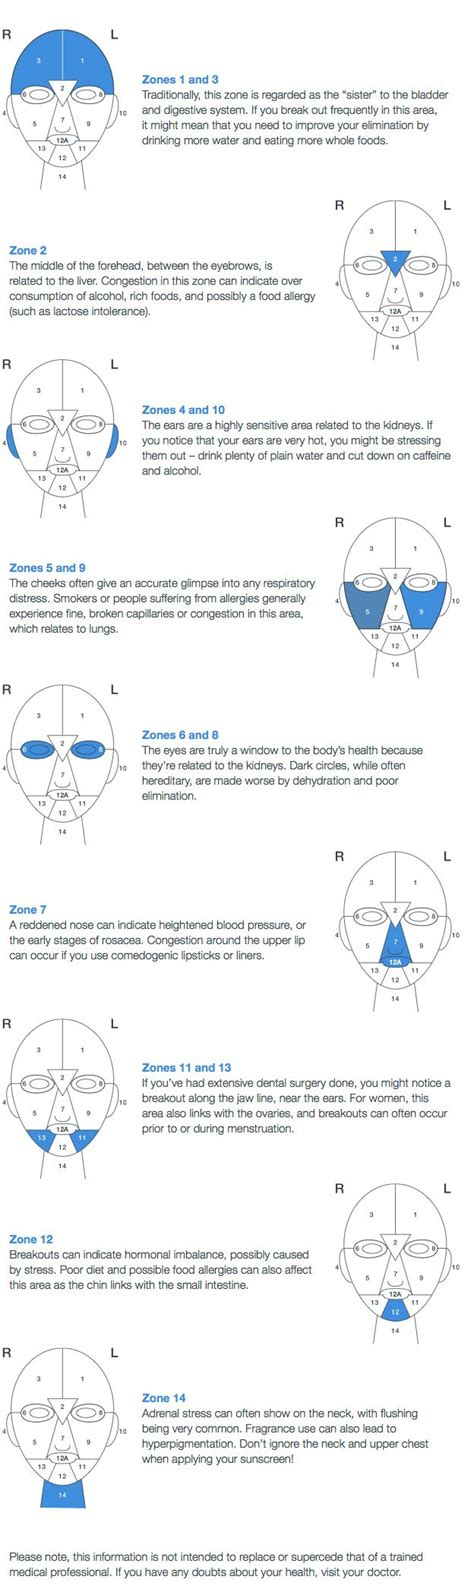 Face Mapping On Pinterest Estheticians Facial Massage | dermalogica face mapping skin analysis beauty tips and